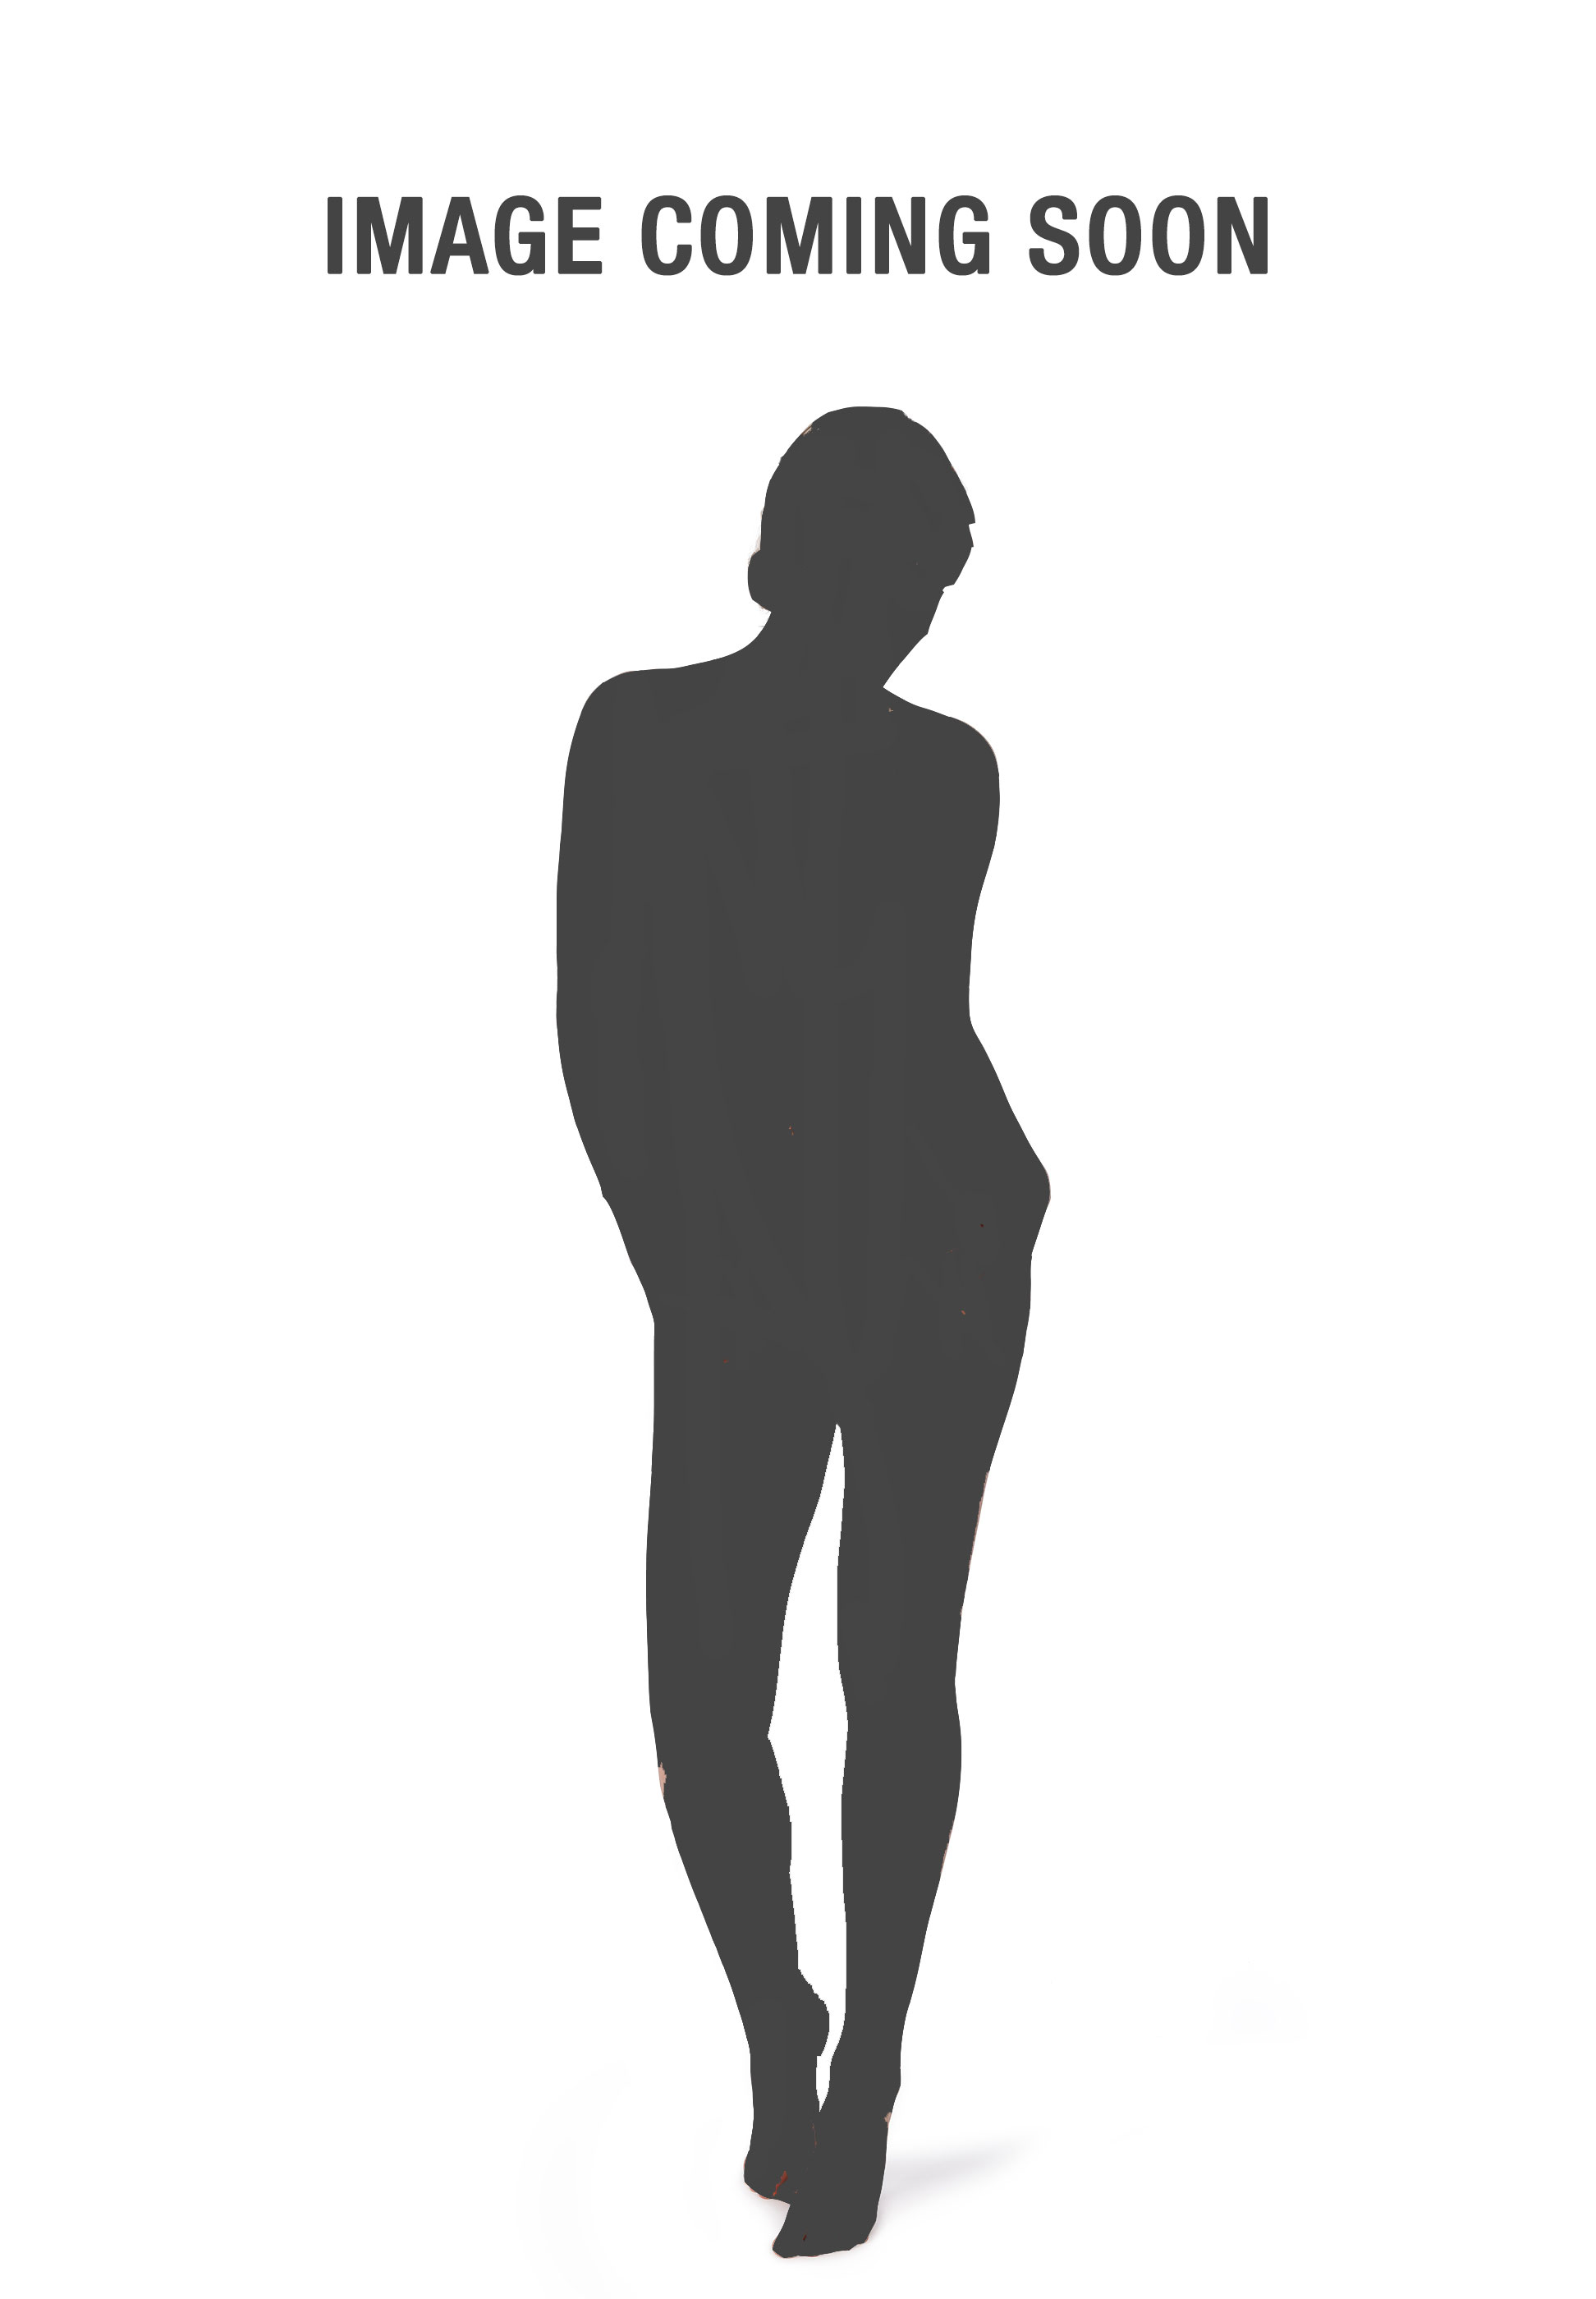 Huber_Basic_M_24hoursmensleep_shorts_117799_016606_010.jpg